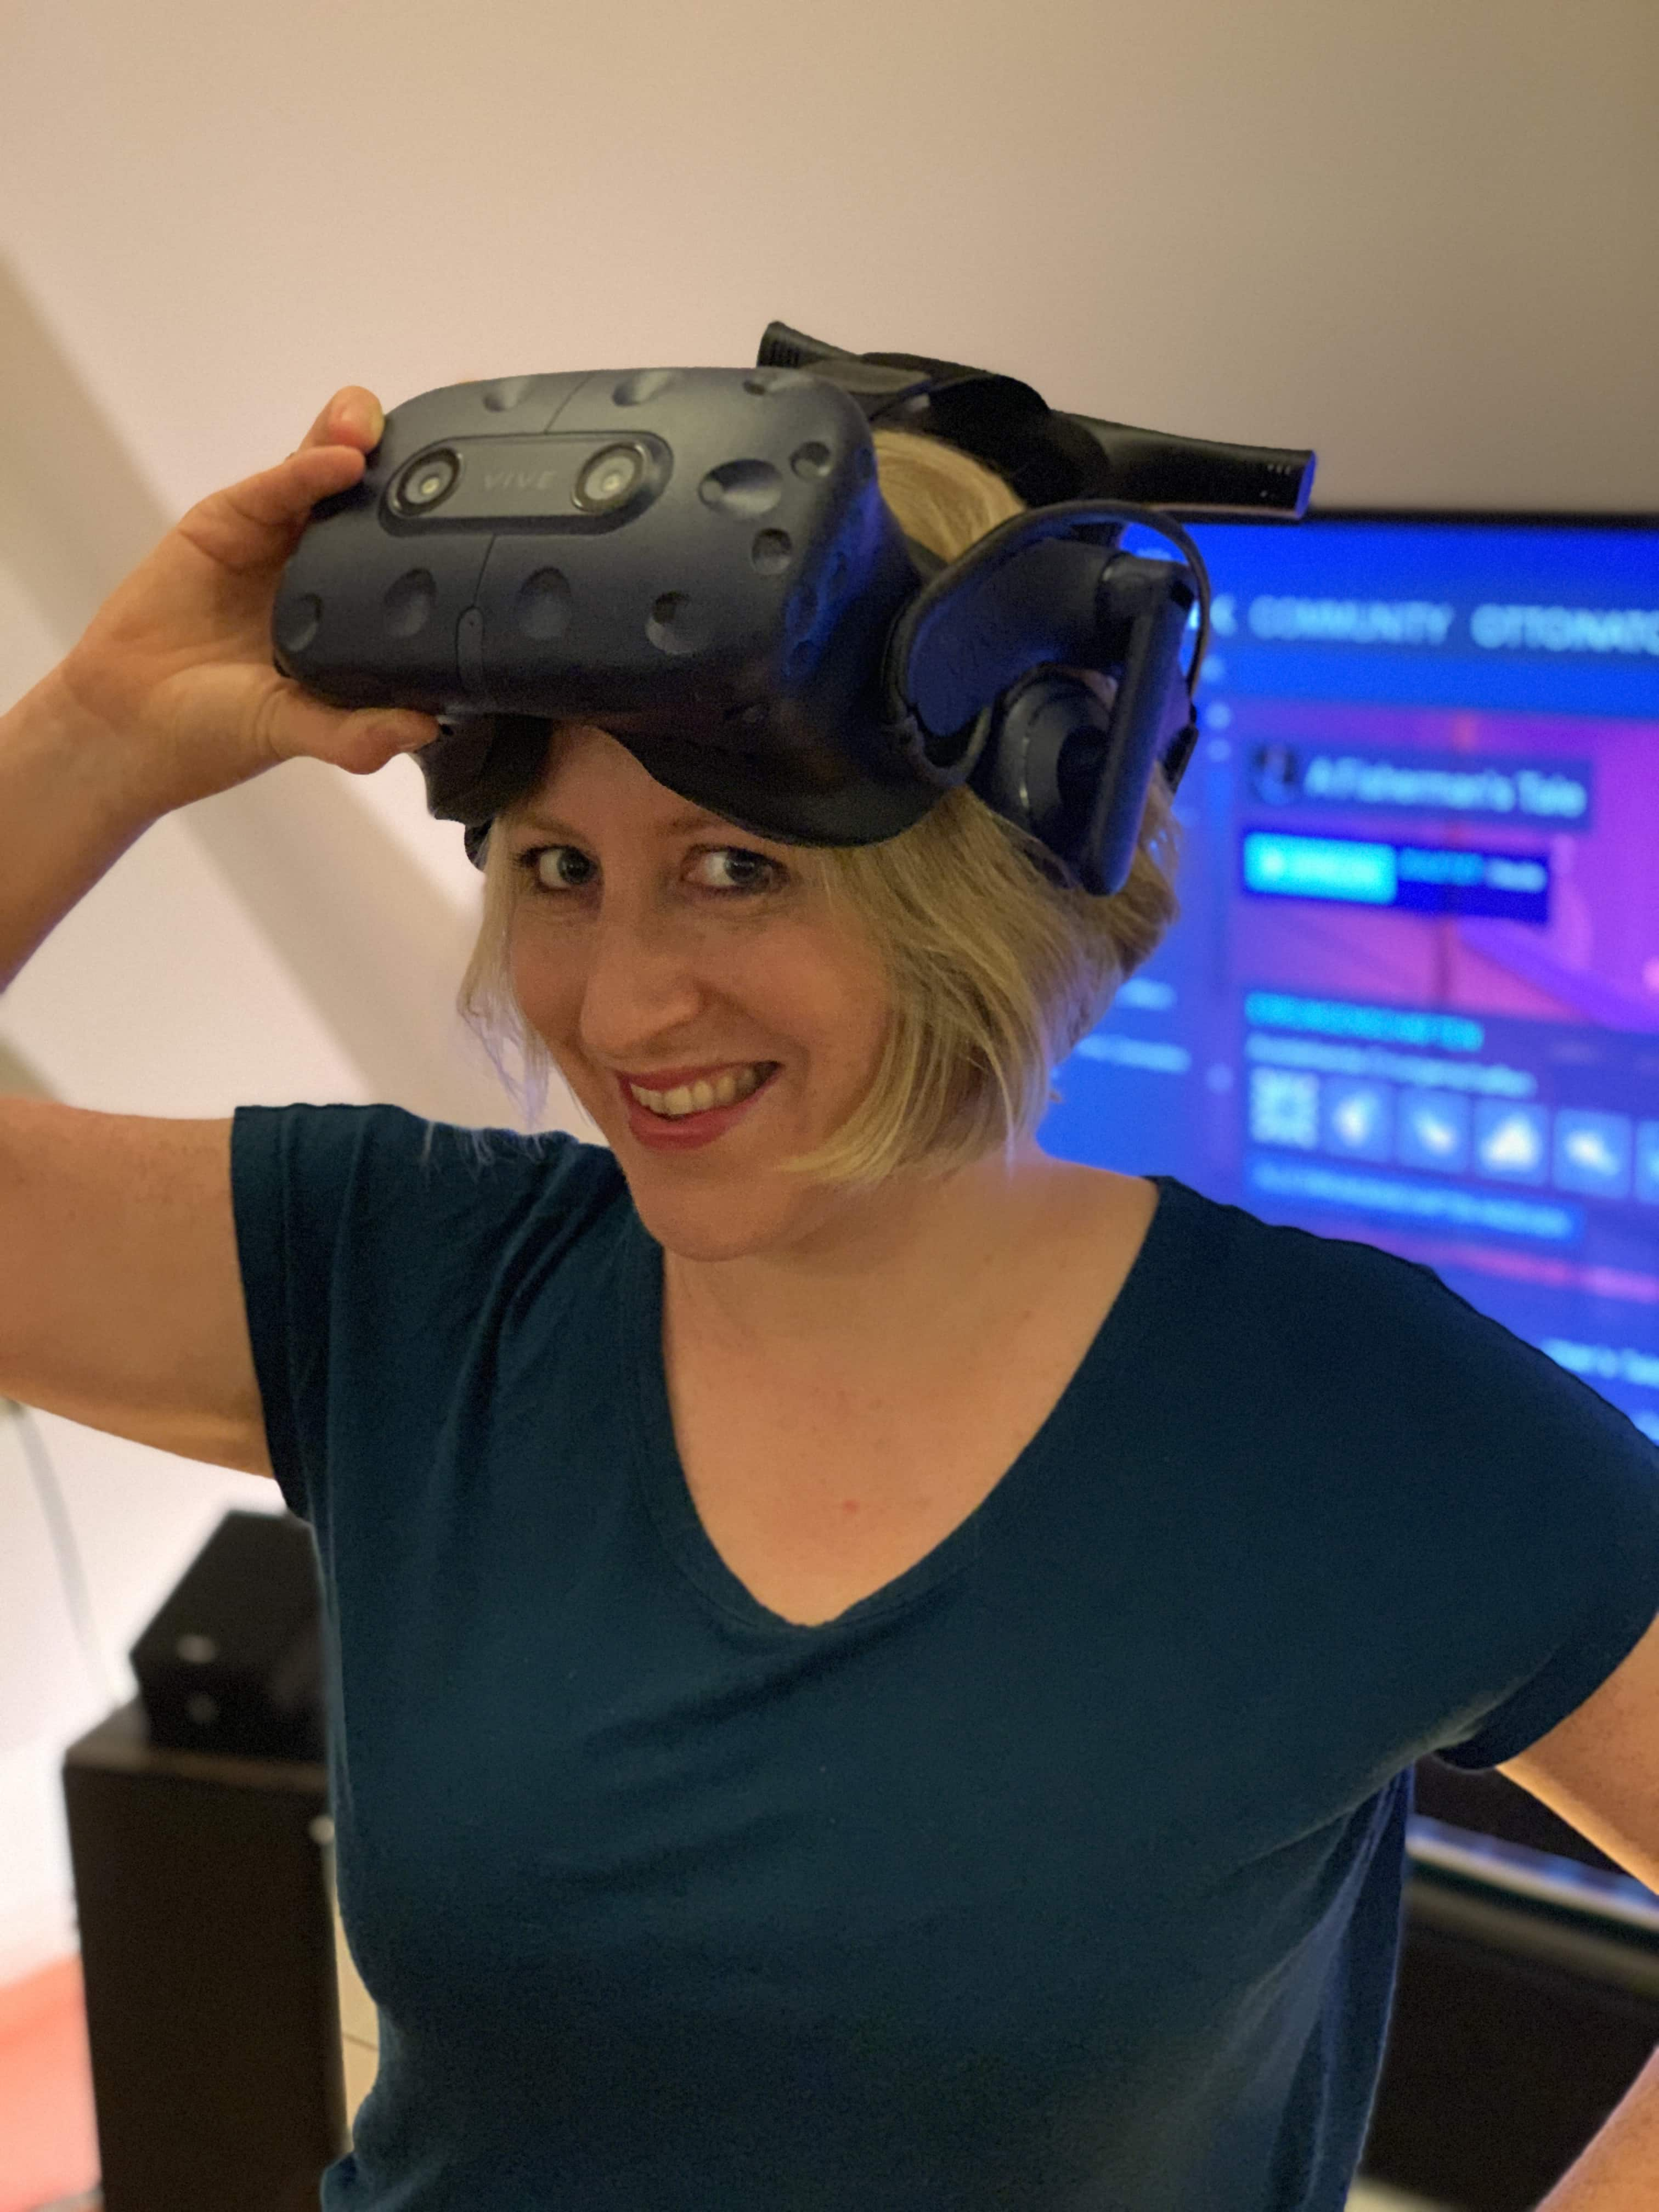 Pola Weiß writes on her blog VR Geschichten (vrstories.blog) about Storytelling in Virtual Reality, Augmented Reality and 360 degrees.